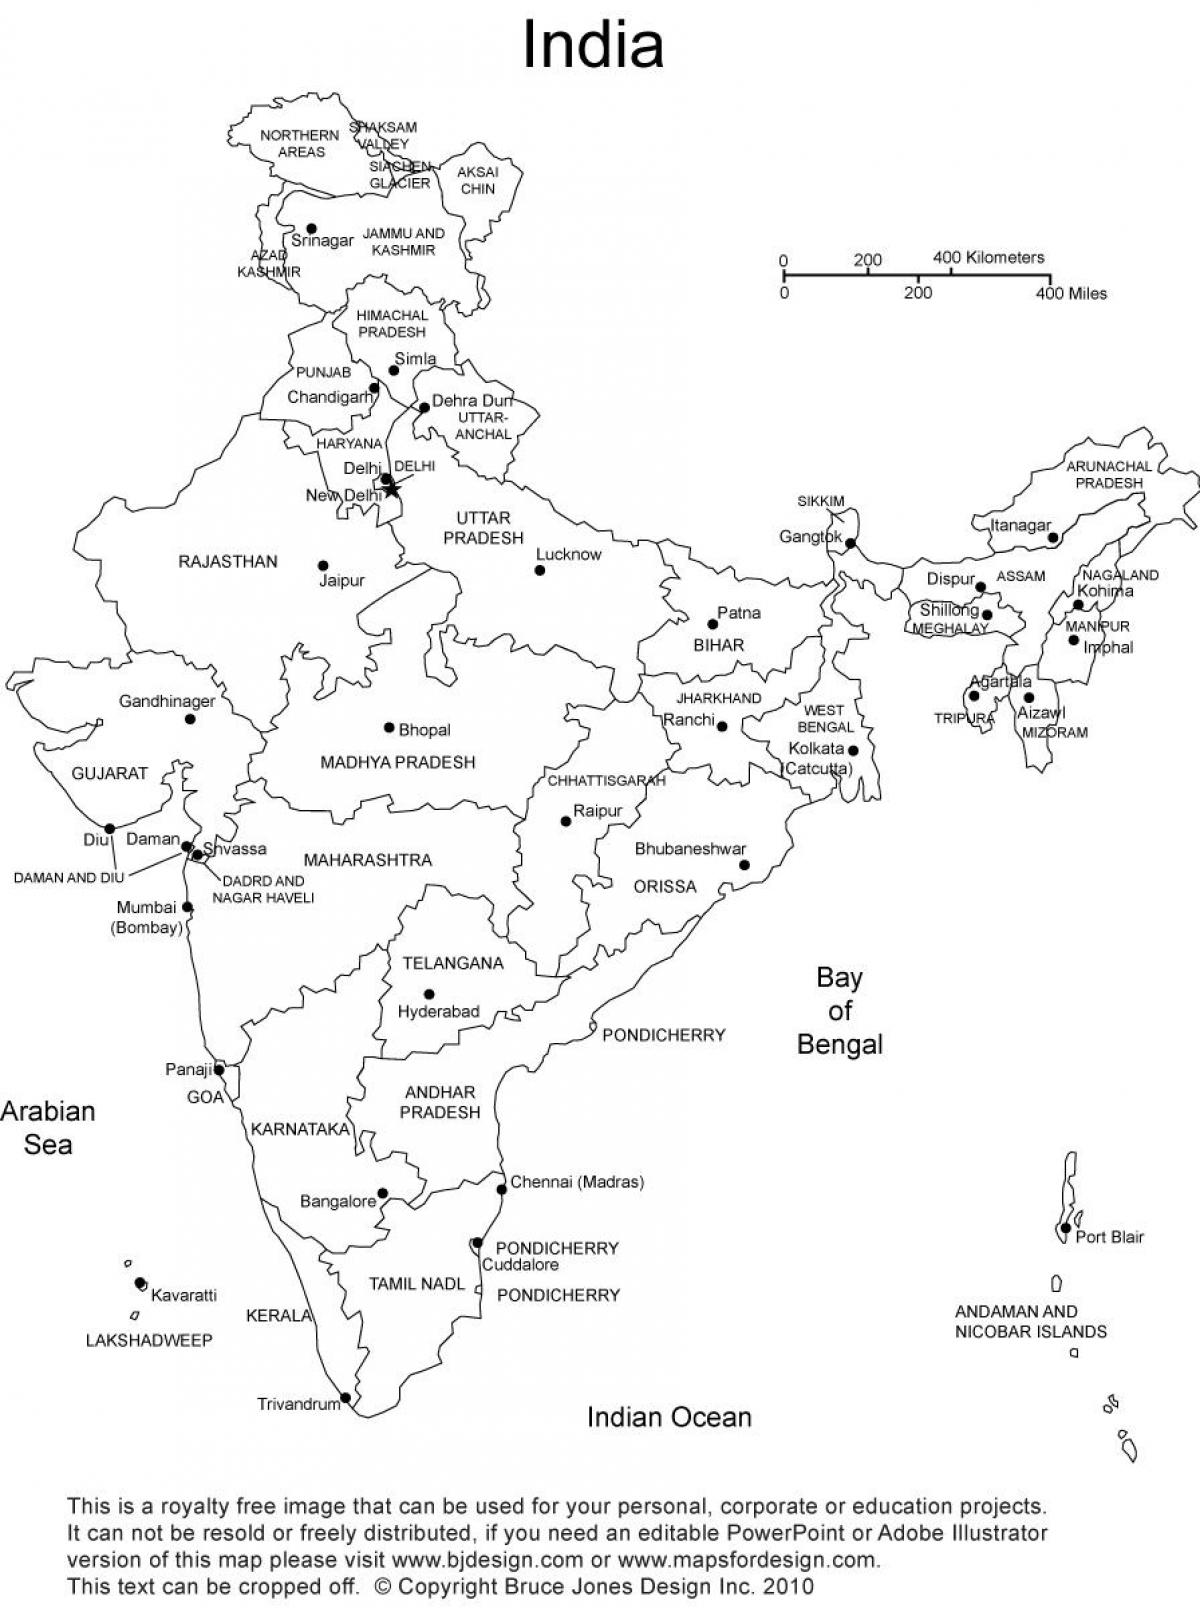 Outline map of india with states marked india outline map with india outline map with states marked thecheapjerseys Image collections